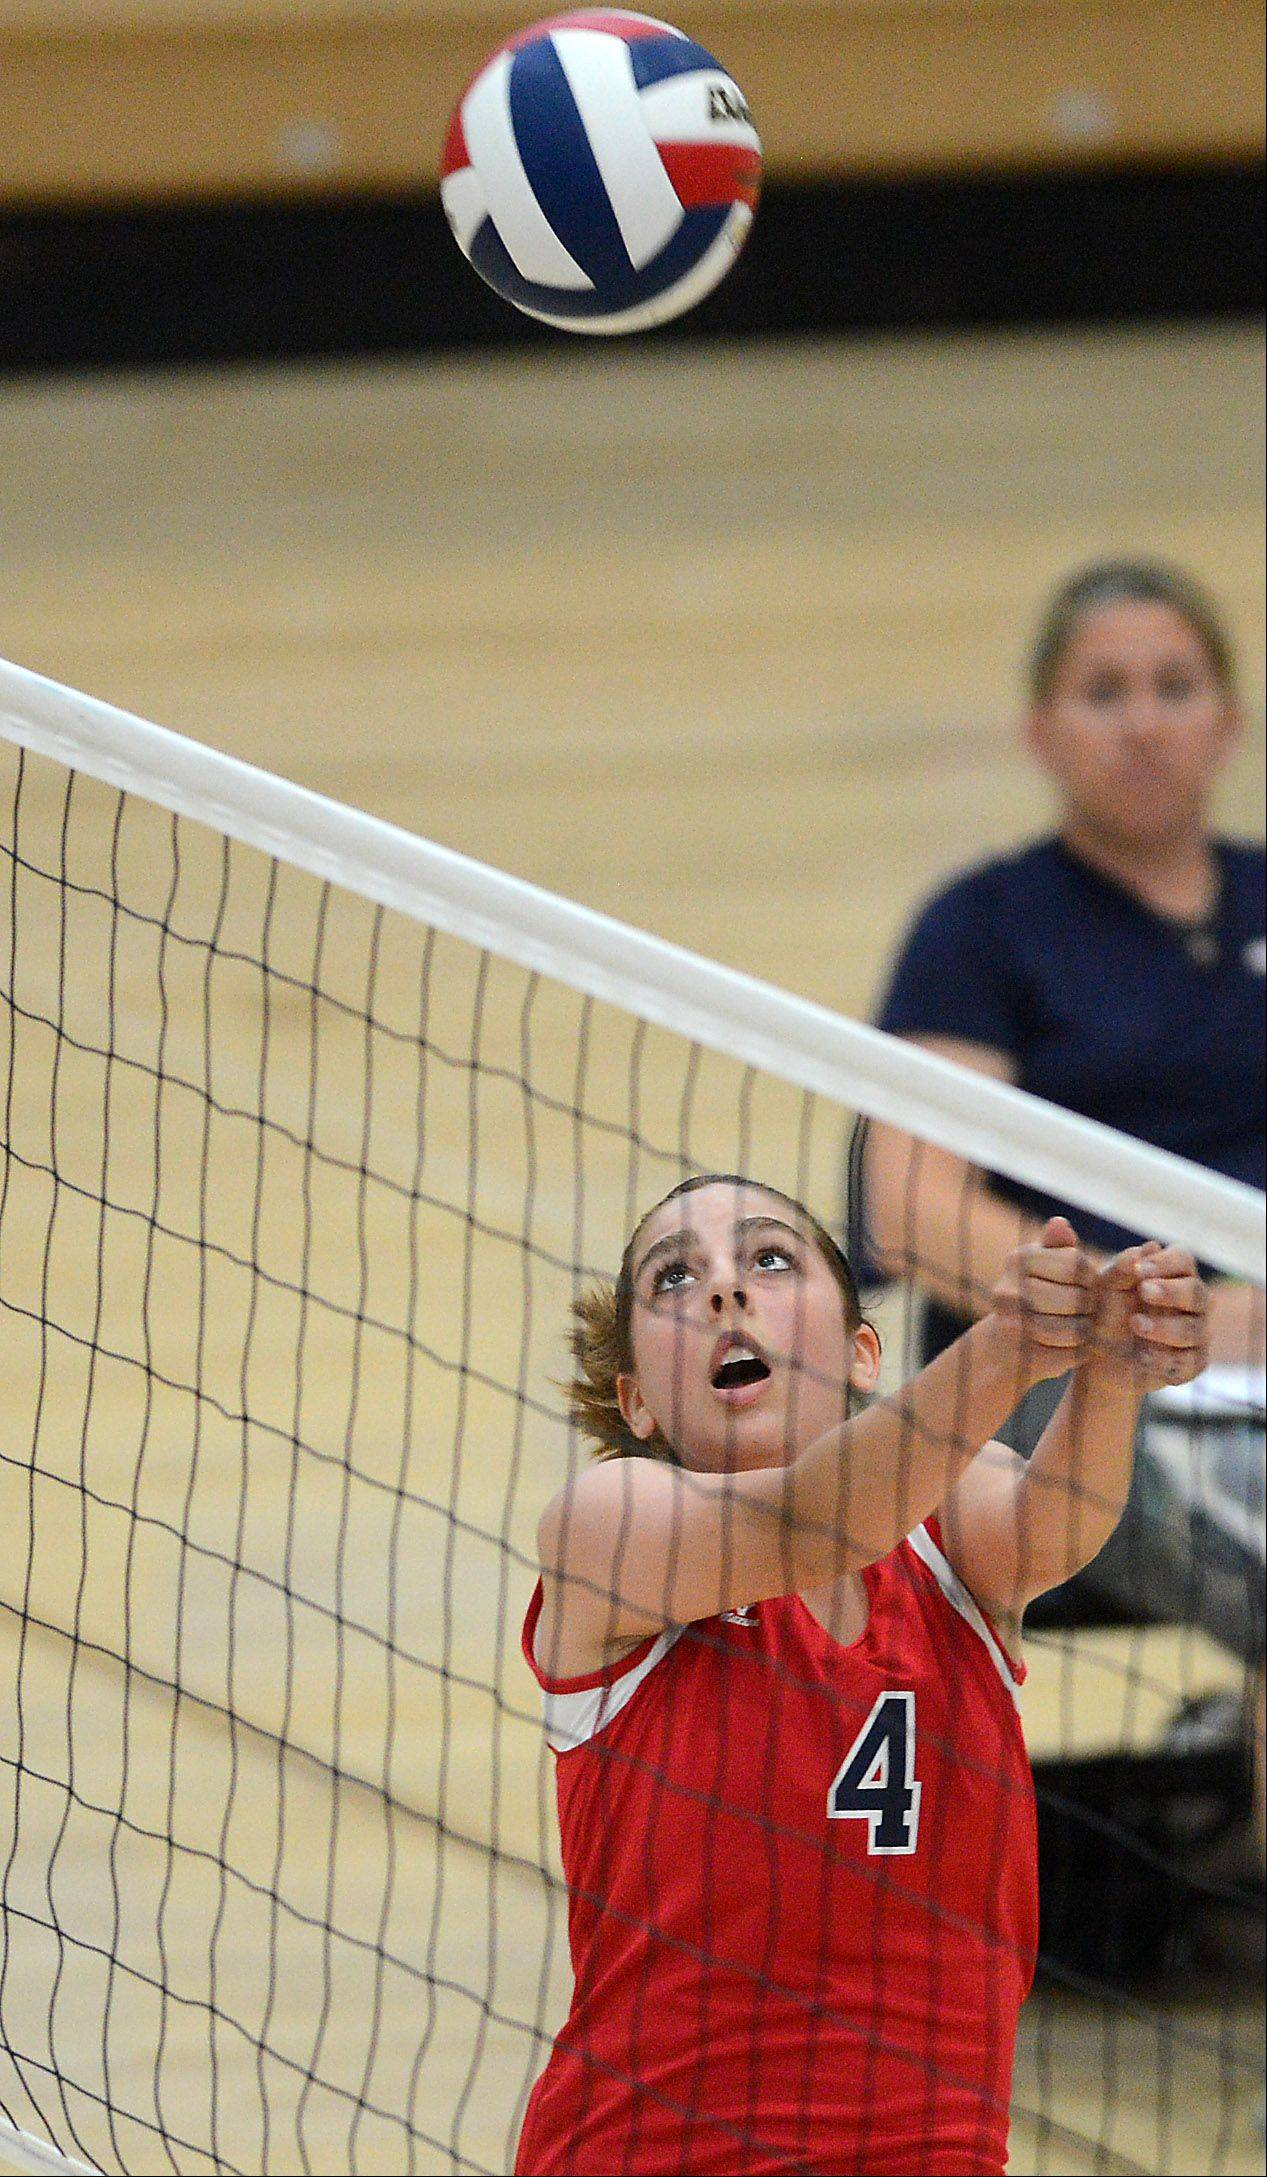 South Elgin's Adrianna Loiacono bumps the ball during Thursday's volleyball match against St. Charles North.